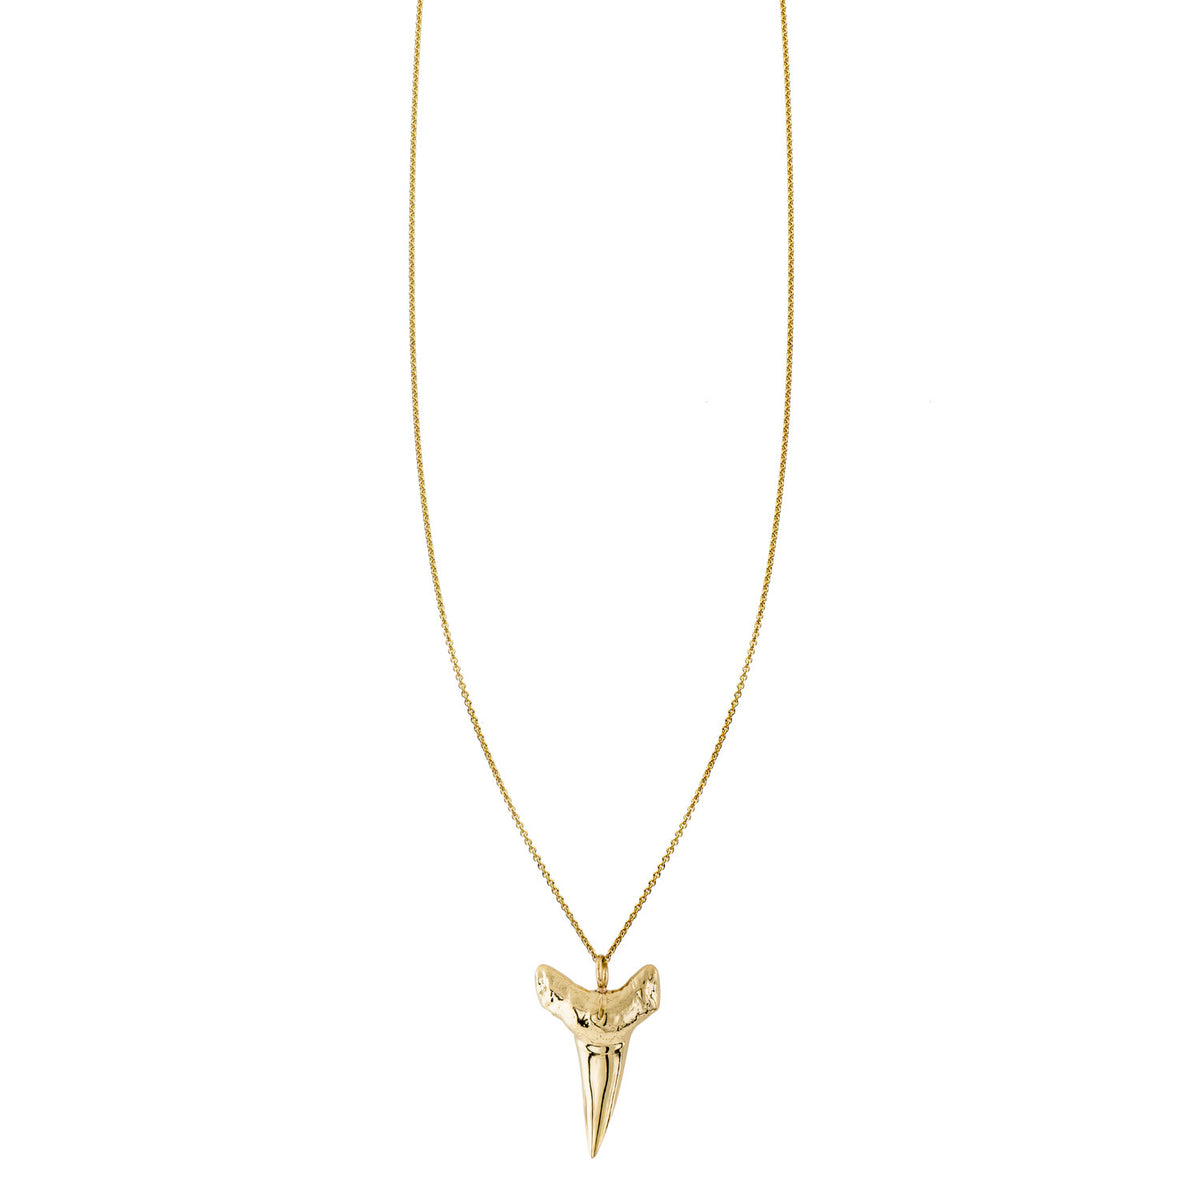 Shark tooth charm necklace on a gold chain gold shark teeth charms gold and trendy charm necklace 5 gold shark teeth charms